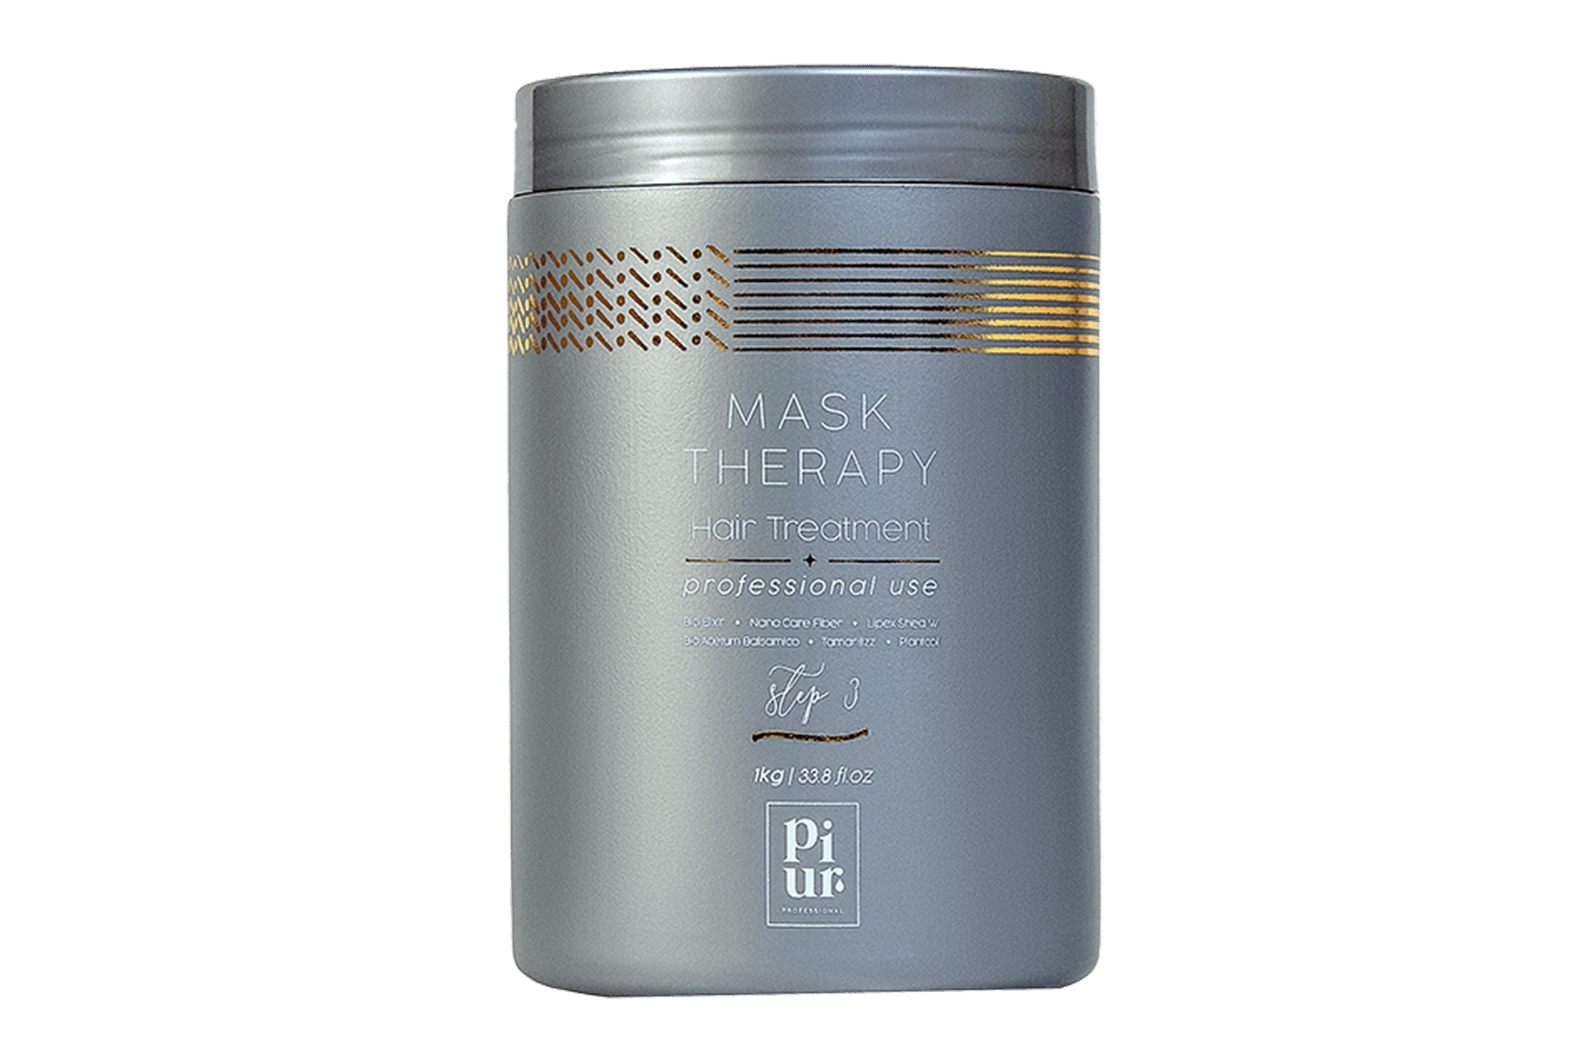 PIUR Mask Therapy 1KG286